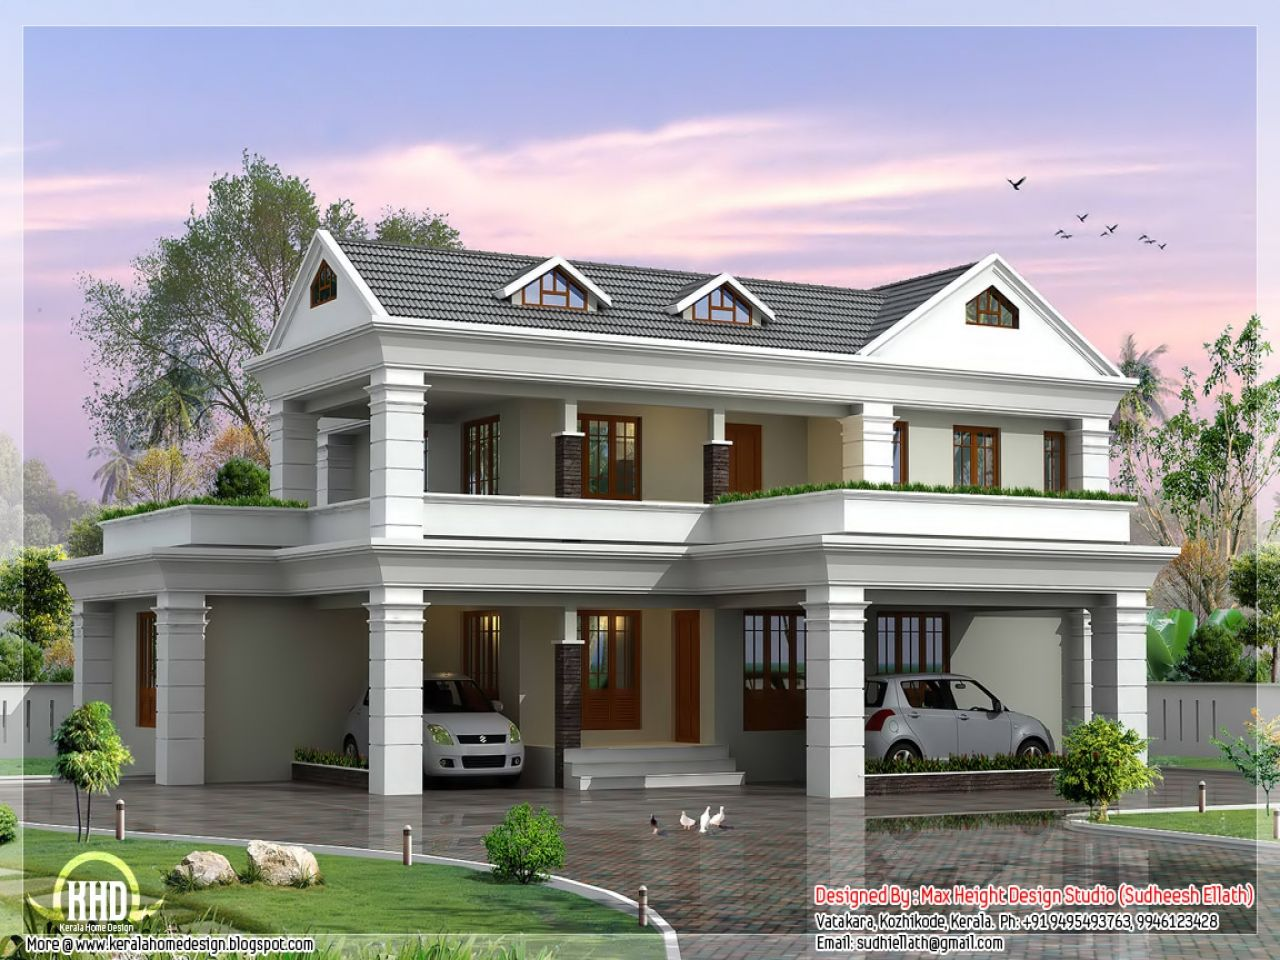 Span new n 2 storey house plans story home designs 115 1 Plans houses with photos